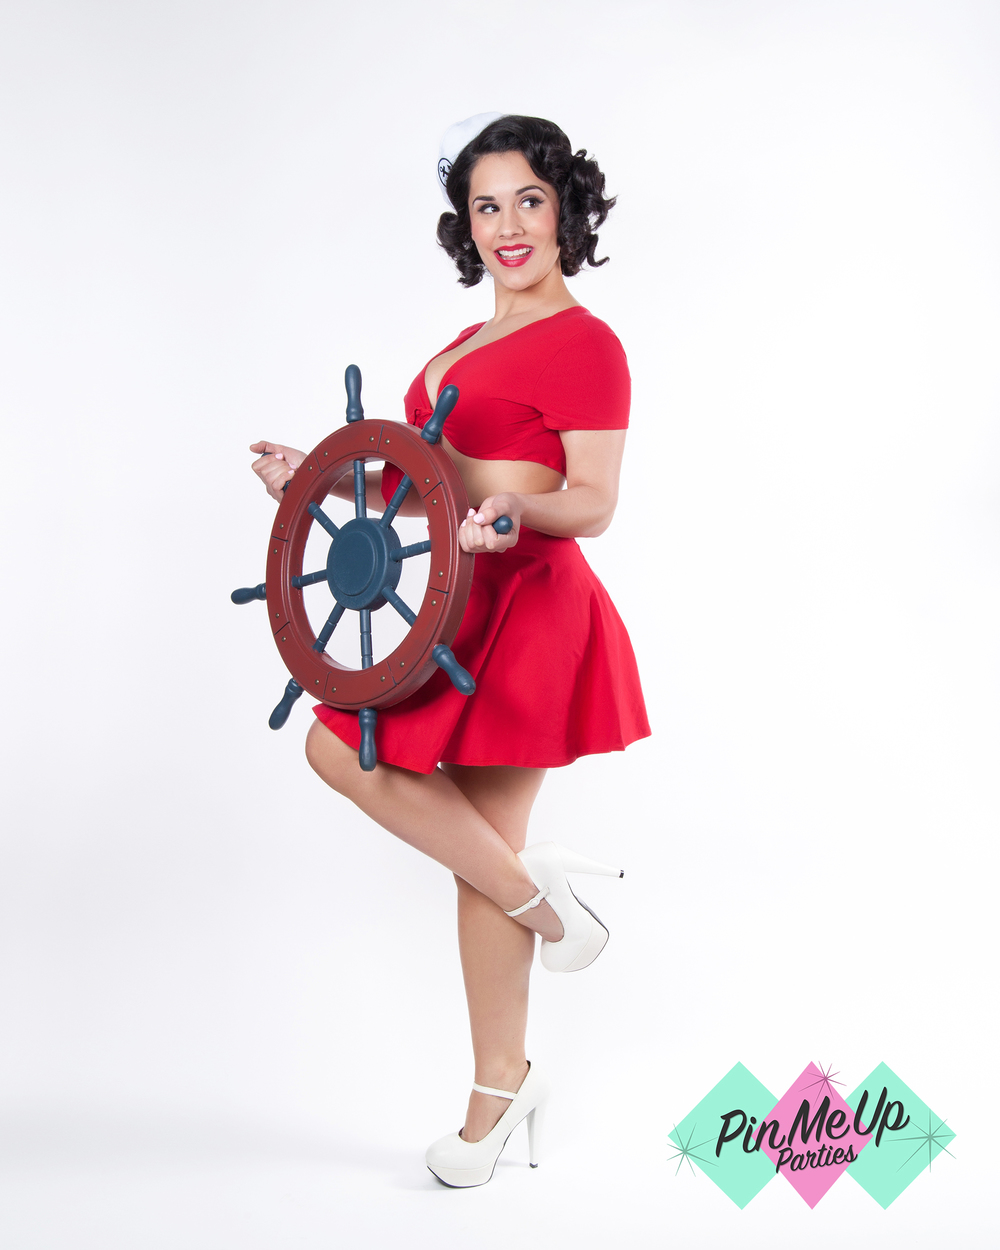 Sailor_Girl_Pinup_Logo.jpg